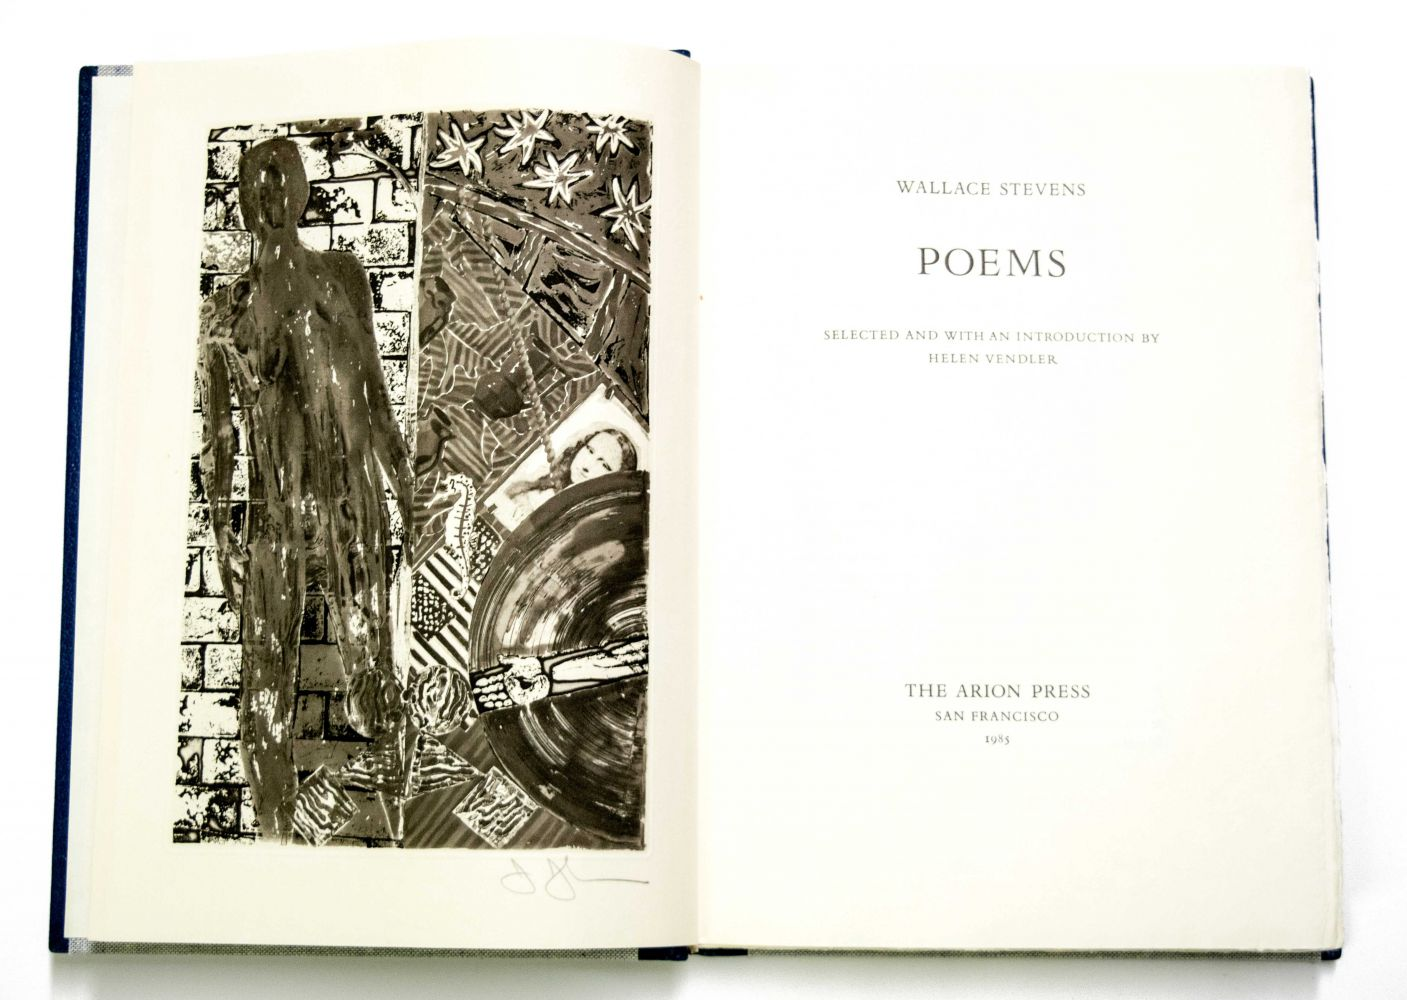 Jasper Johns and Wallace Stephens Poems by Wallace Stephens (with print by Jasper Johns), 1985